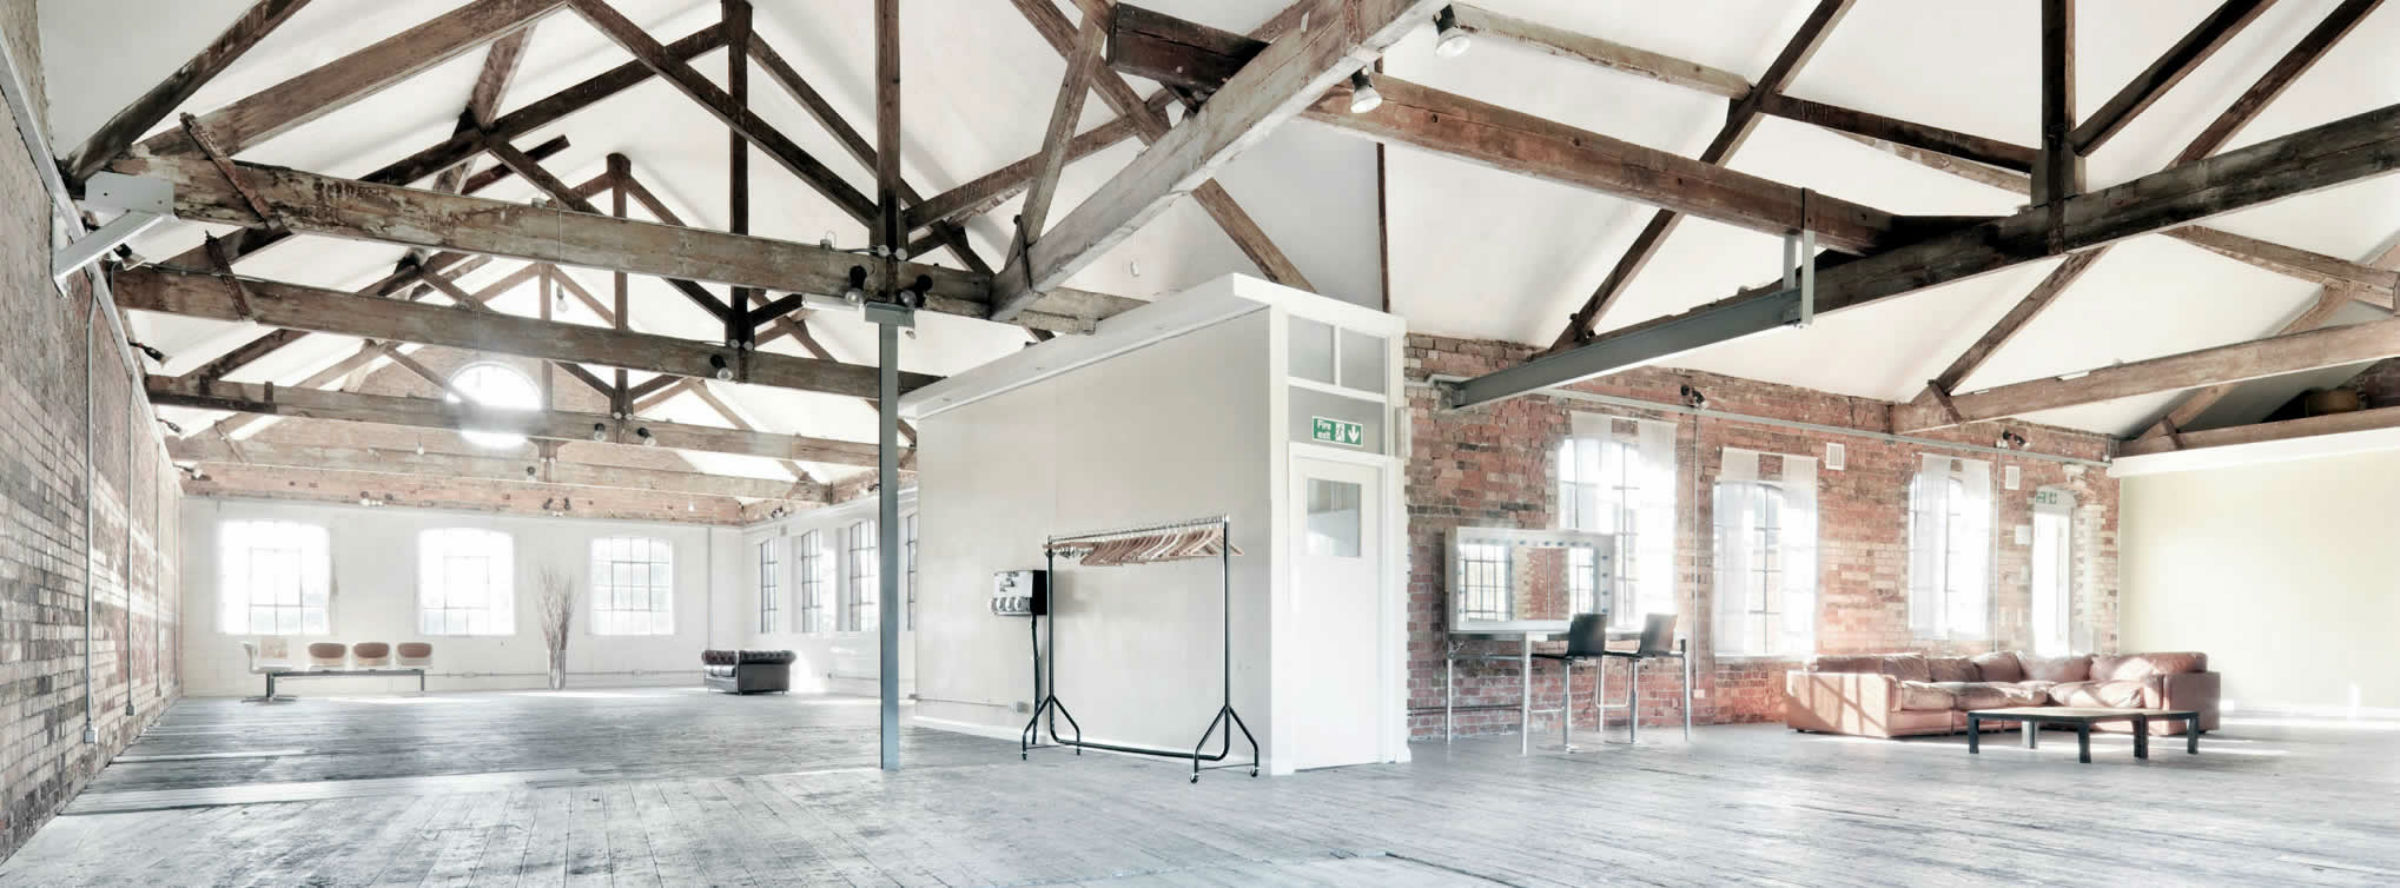 Loft Studios - Studio 4 - Space for photography, events and weddings